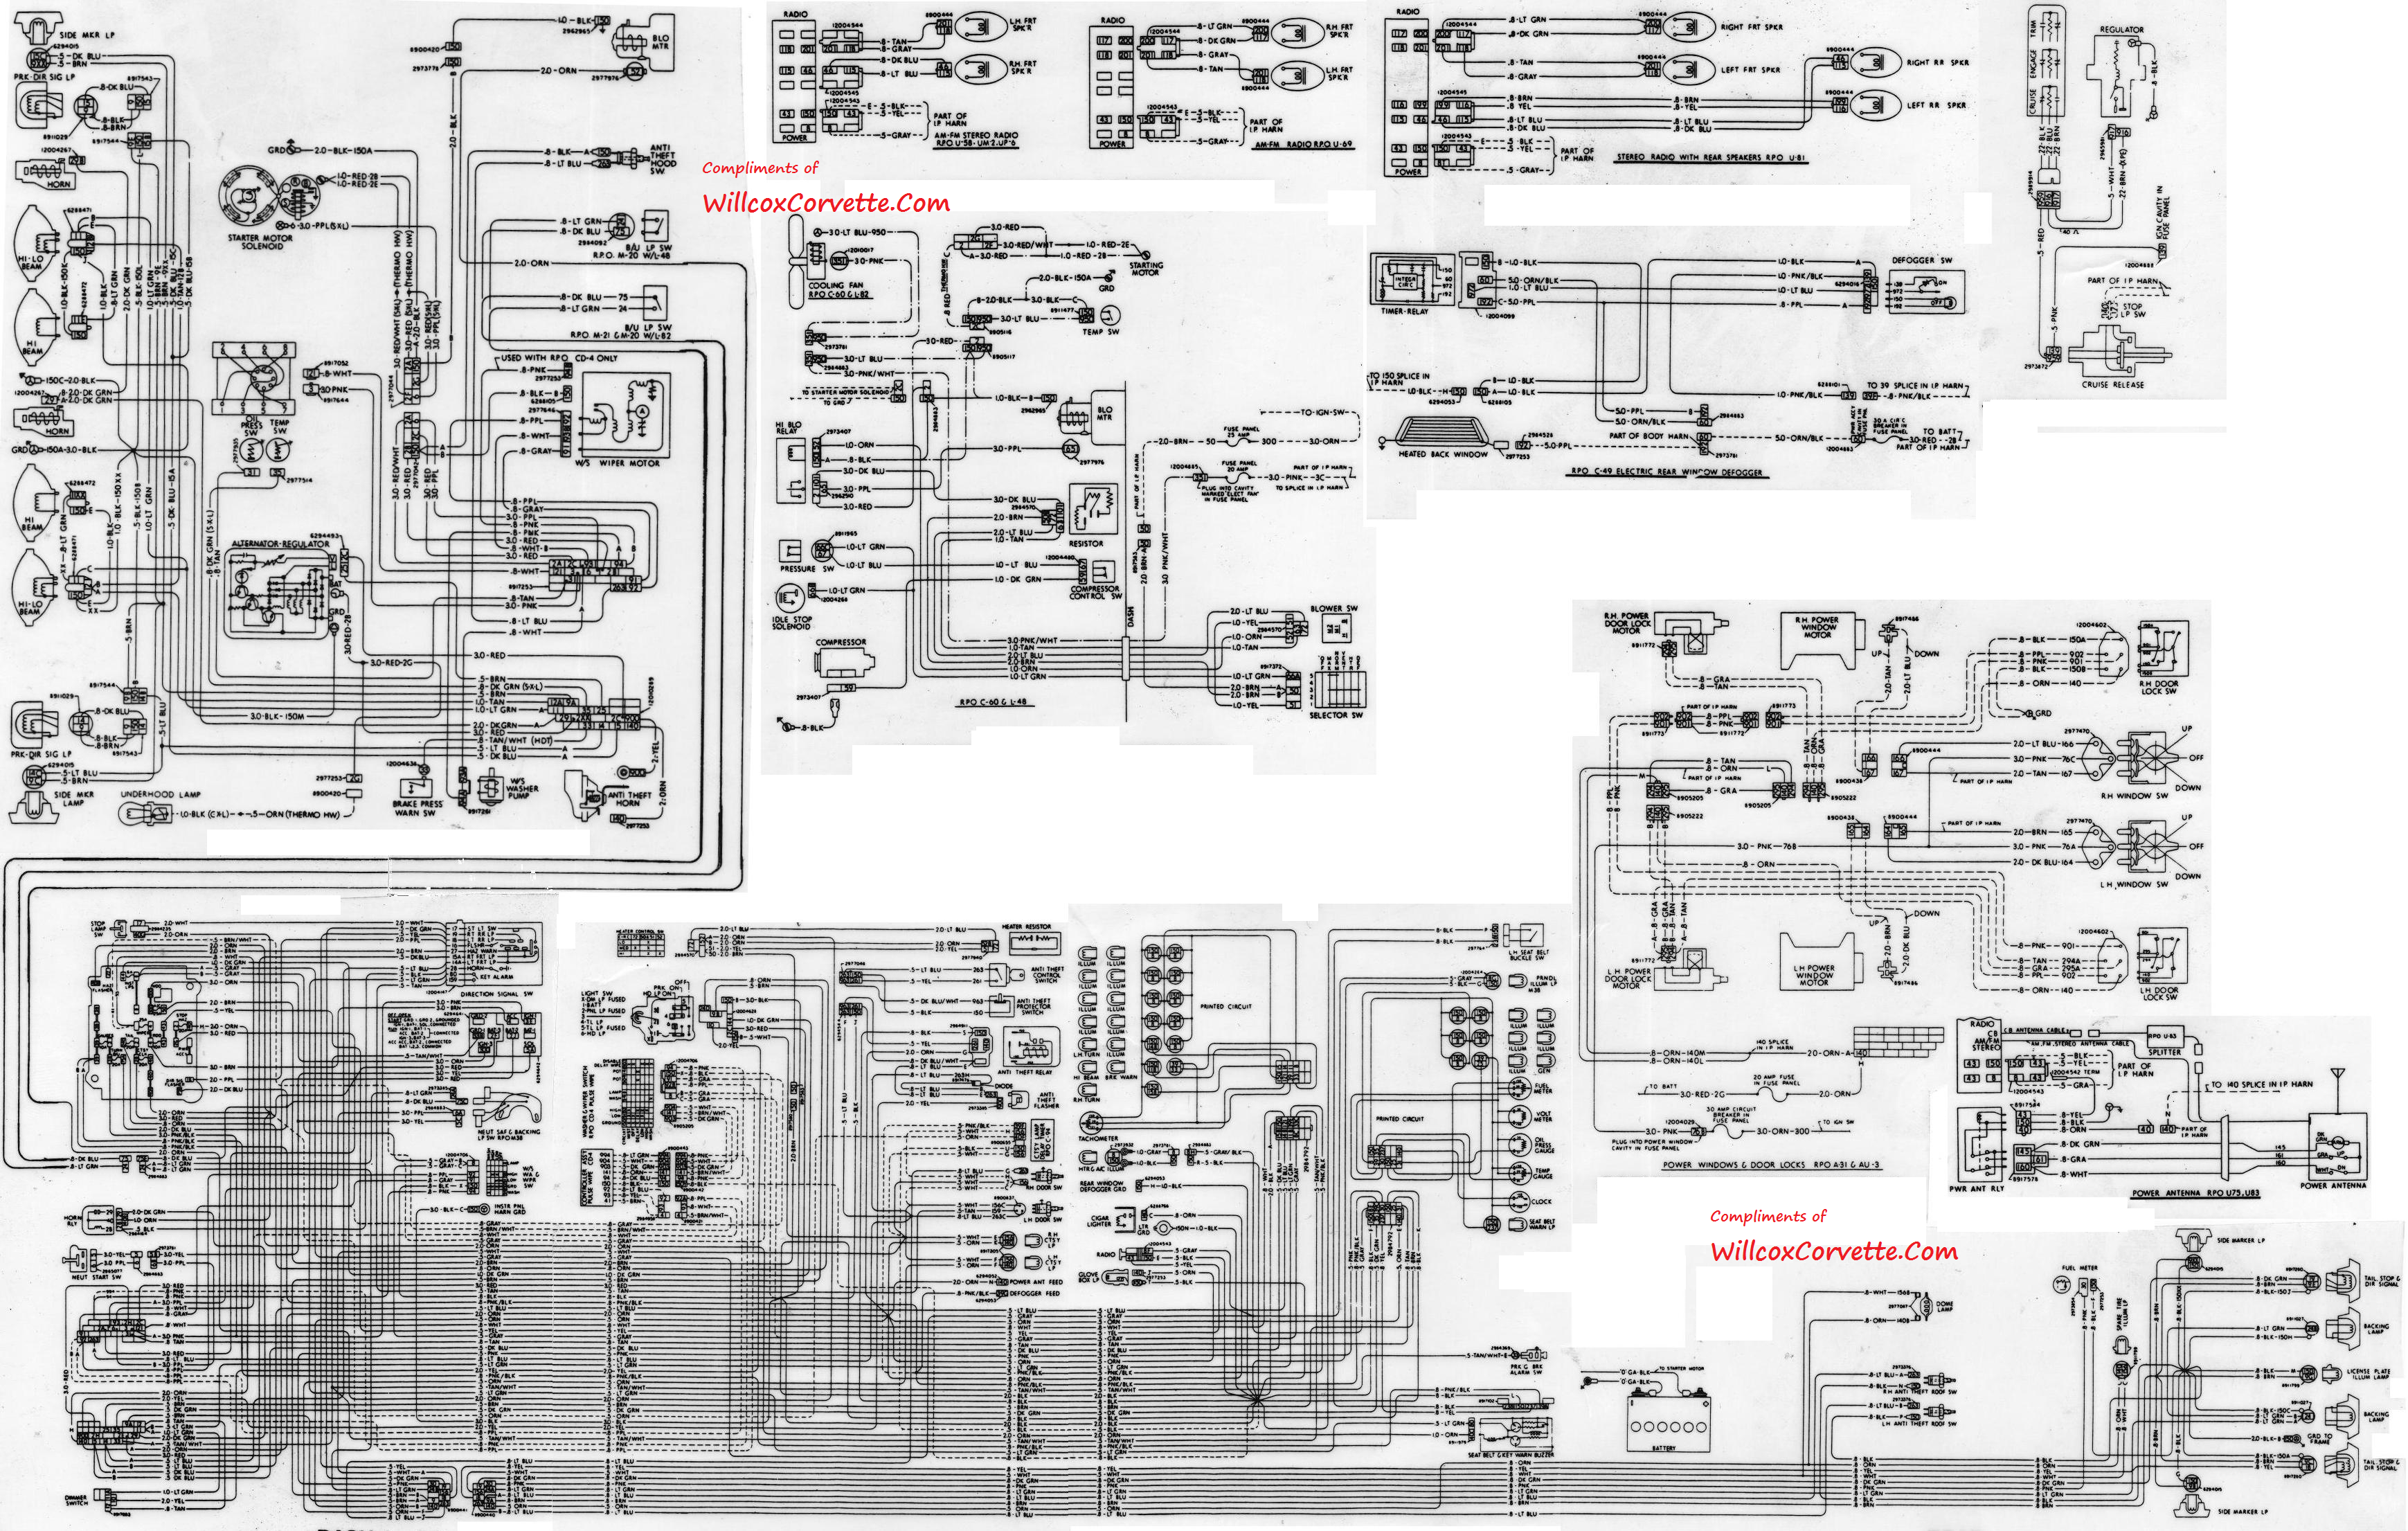 79 COMBINED TRACER SCHEMATIC 1979 wiring diagram corvetteforum chevrolet corvette forum 1979 corvette wiring diagram at suagrazia.org